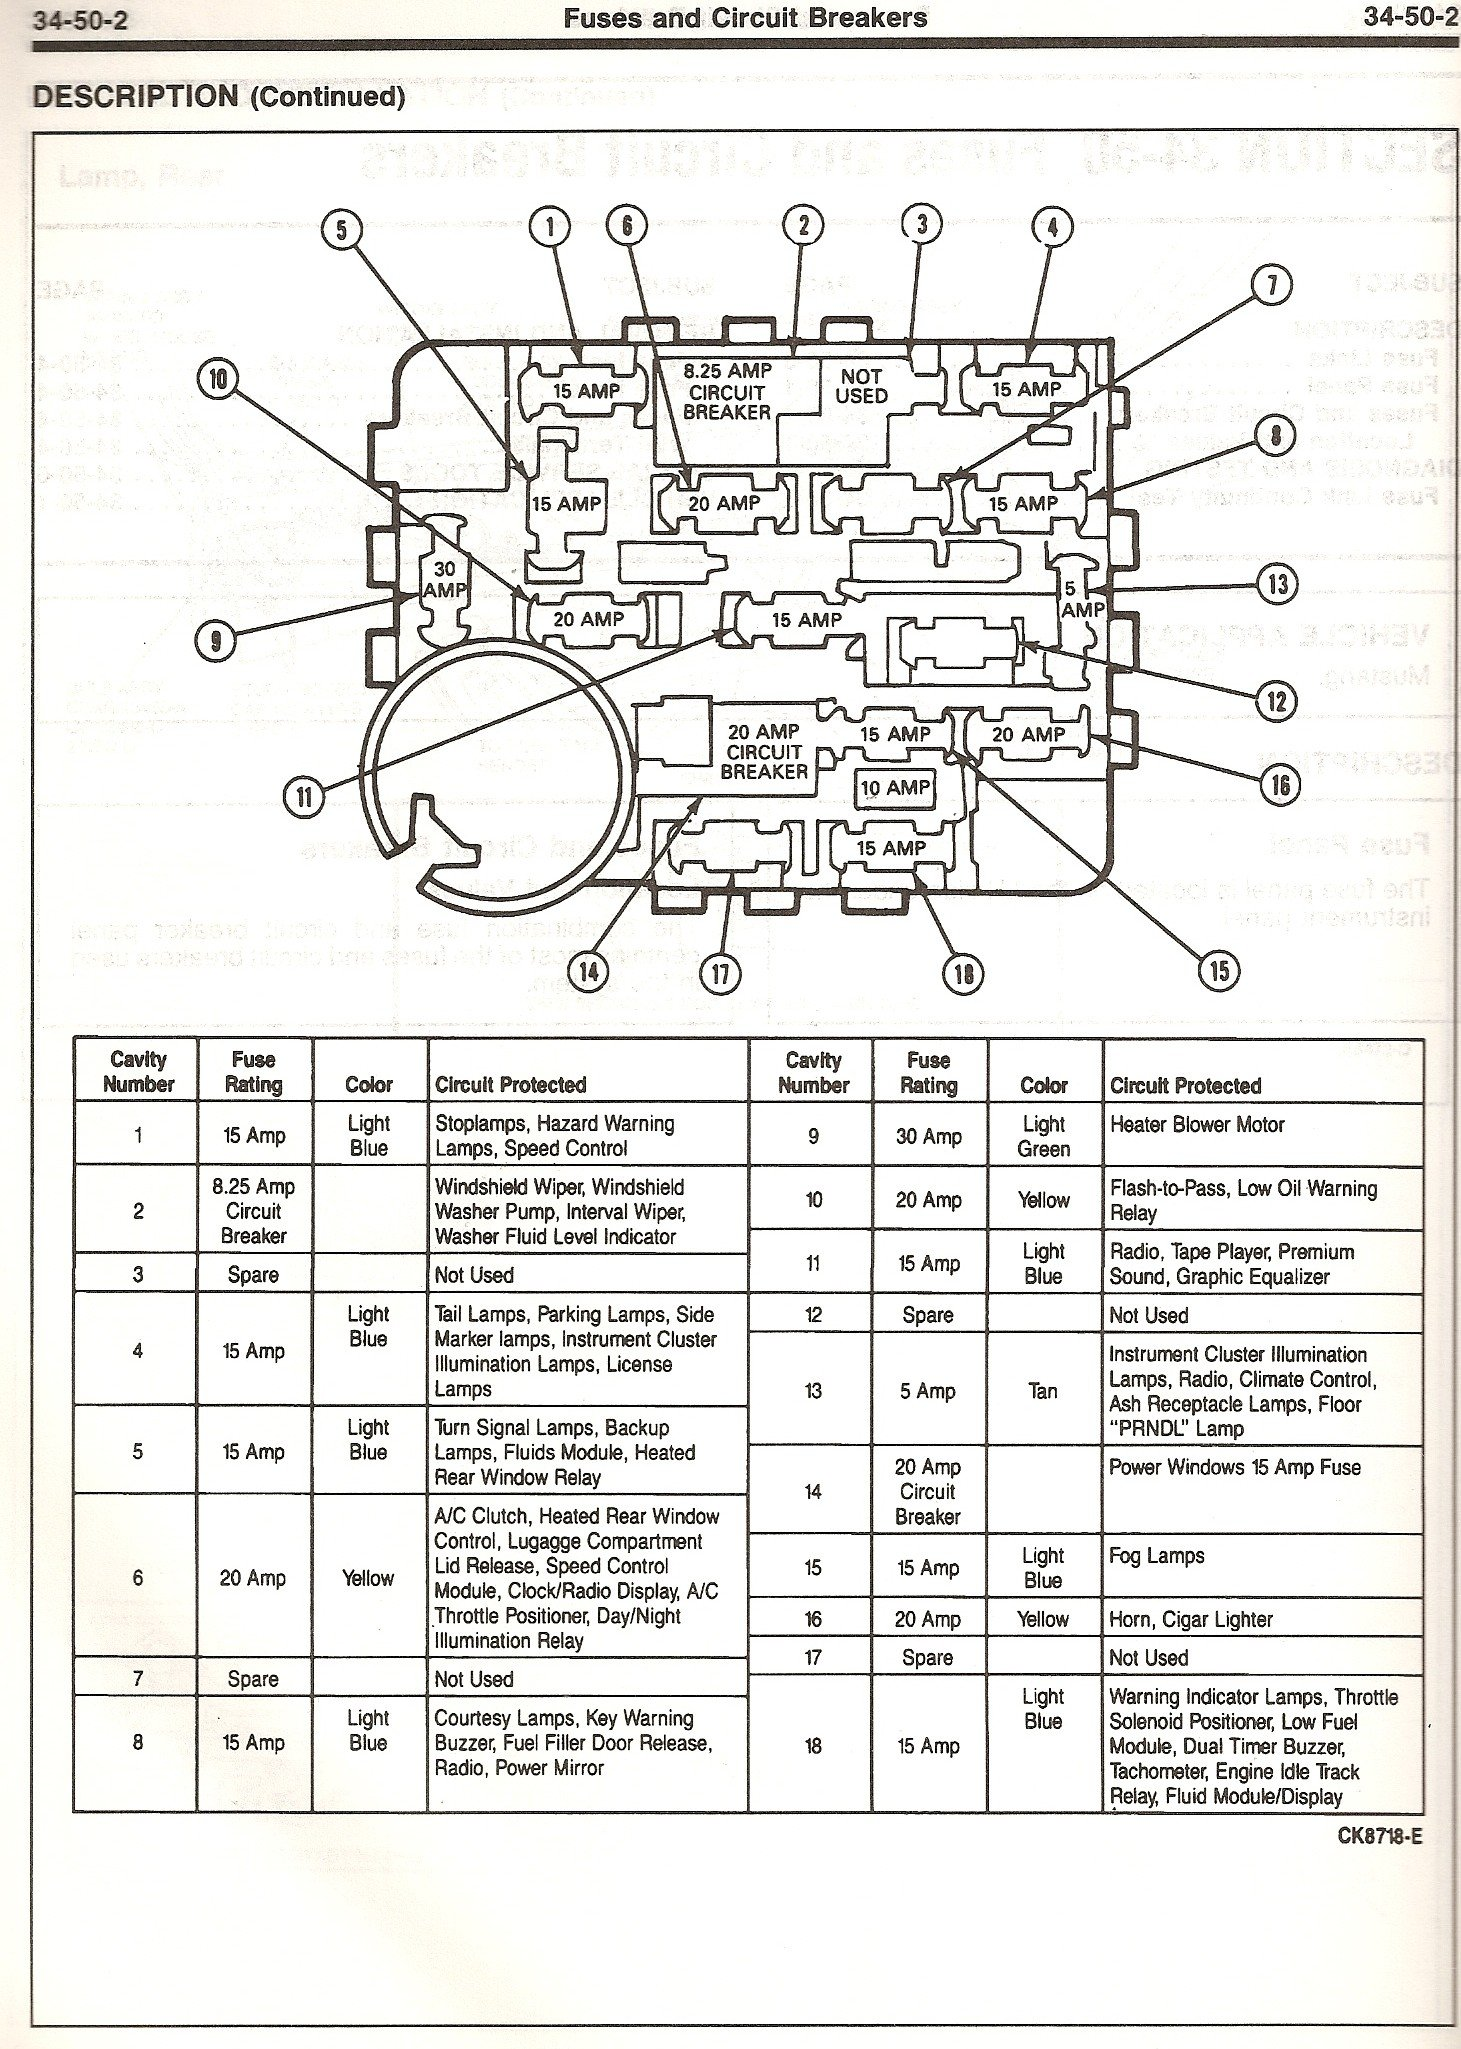 30633d1185070172 1990 2 3 mustang missing fuse panel diagram scan7 1990 2 3 mustang missing fuse panel diagram ford mustang forum 1992 mustang fuse box location at gsmx.co